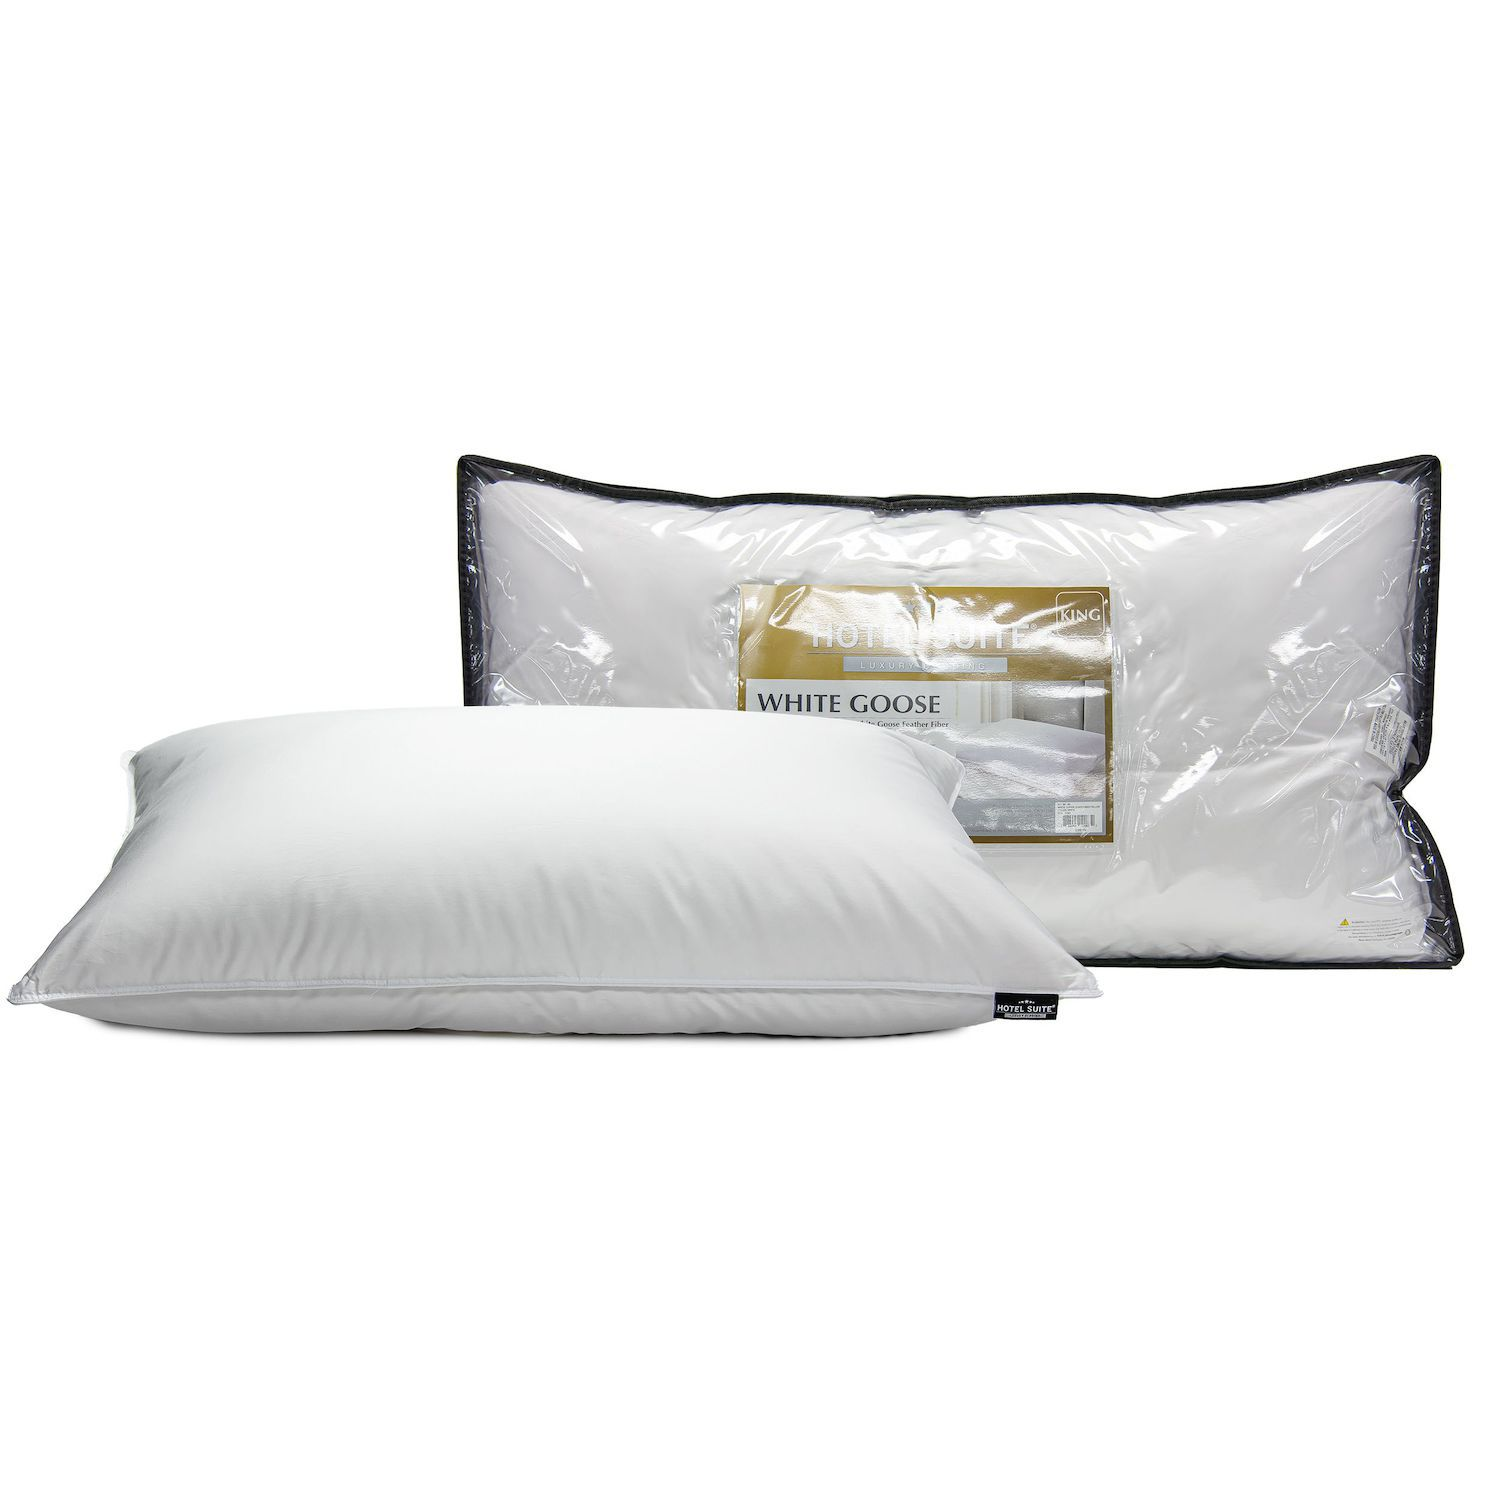 hotel suite white goose down soft pillow